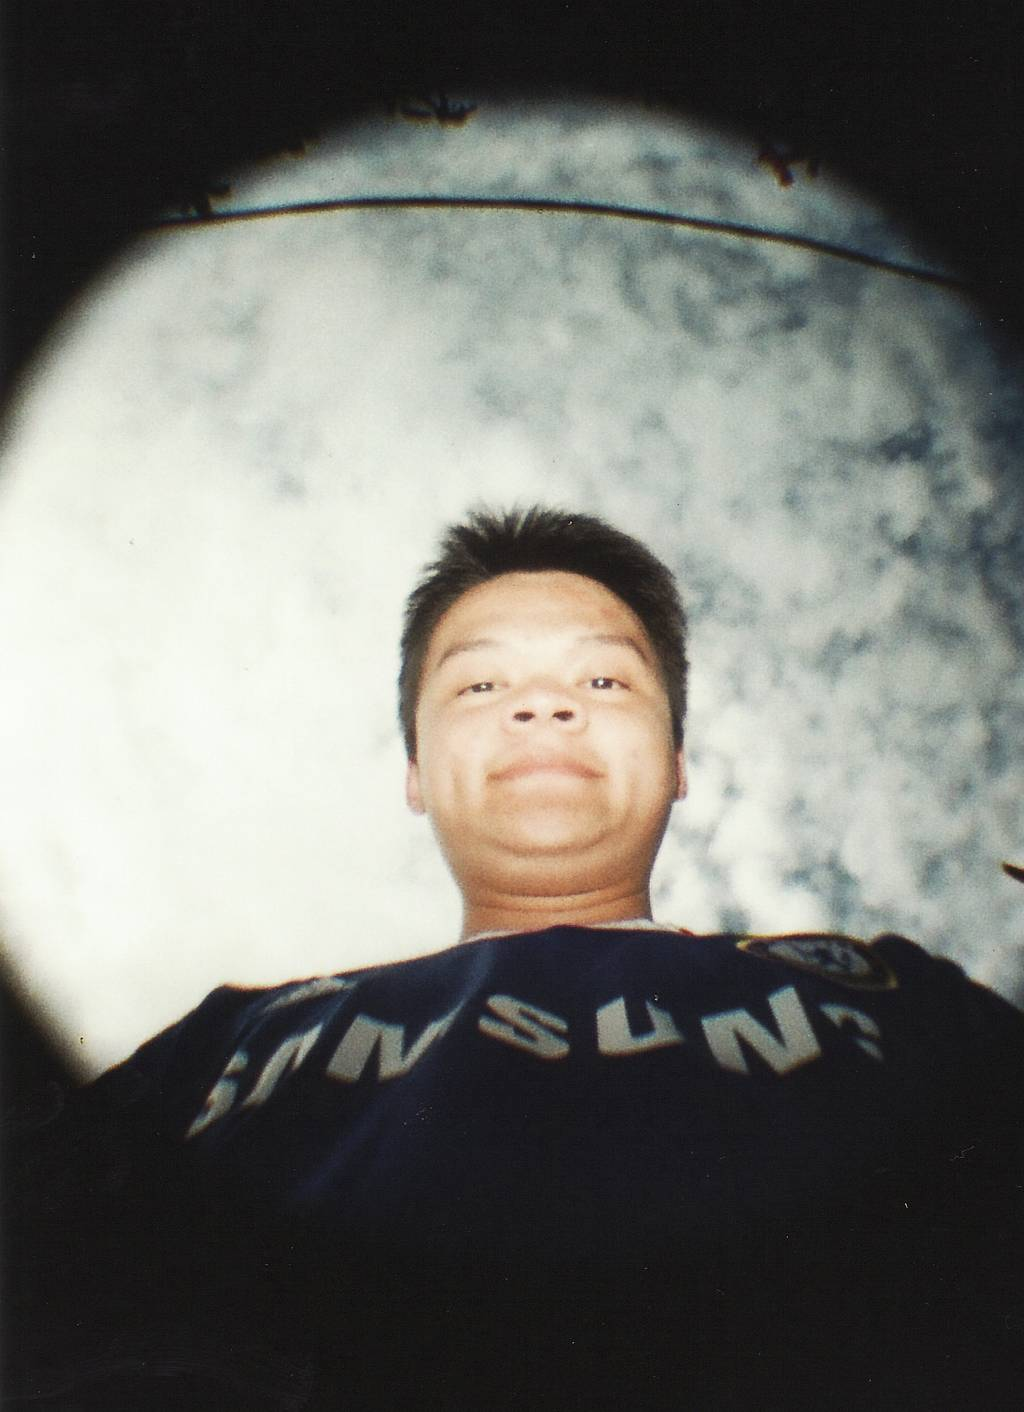 Turn Diana Mini into Fisheye Camera